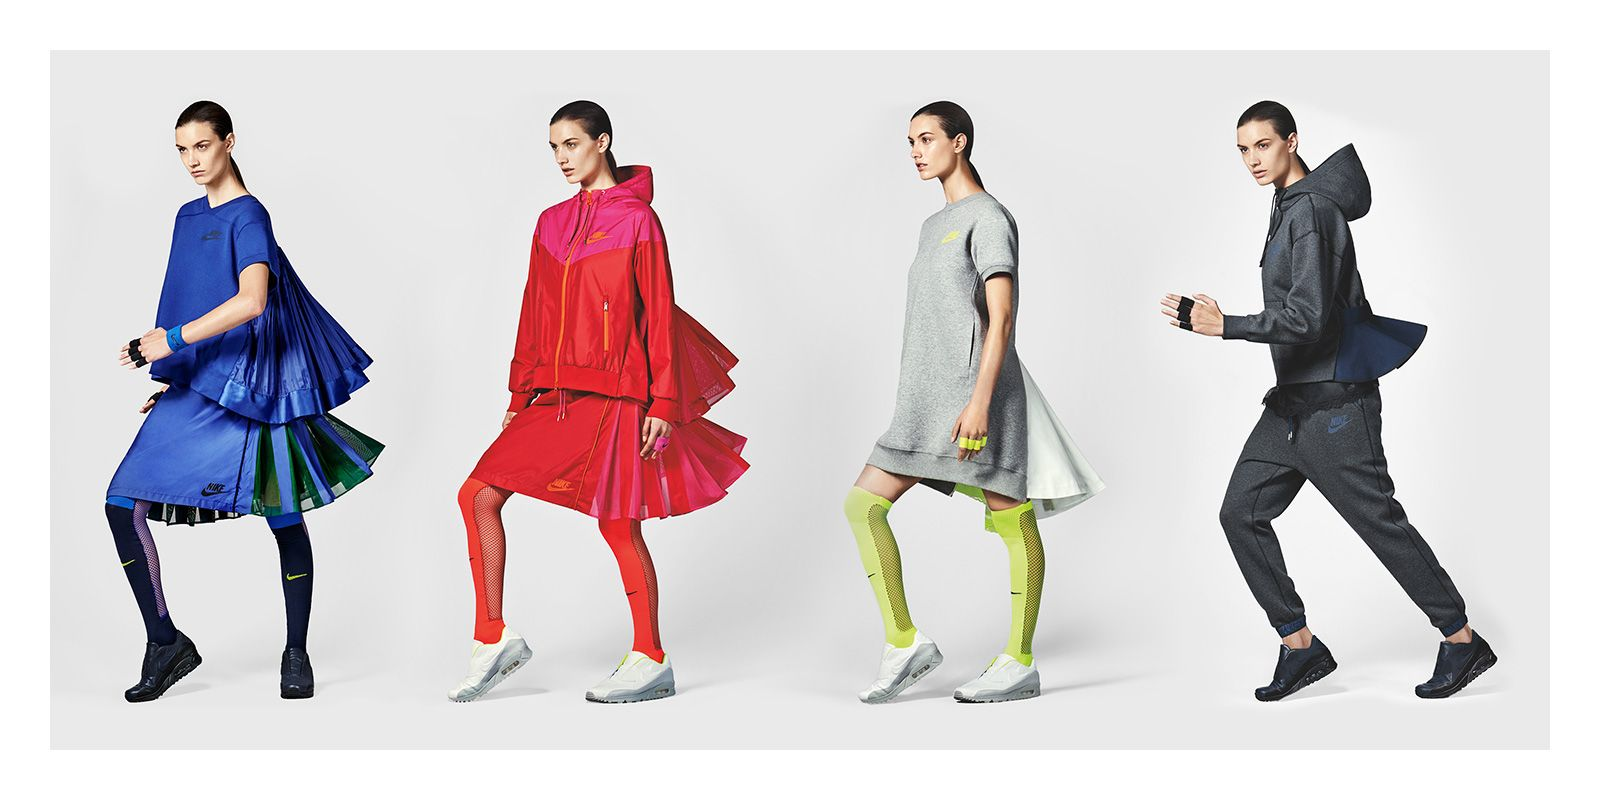 NIKELAB x SACAI : Une collaboration inattendue